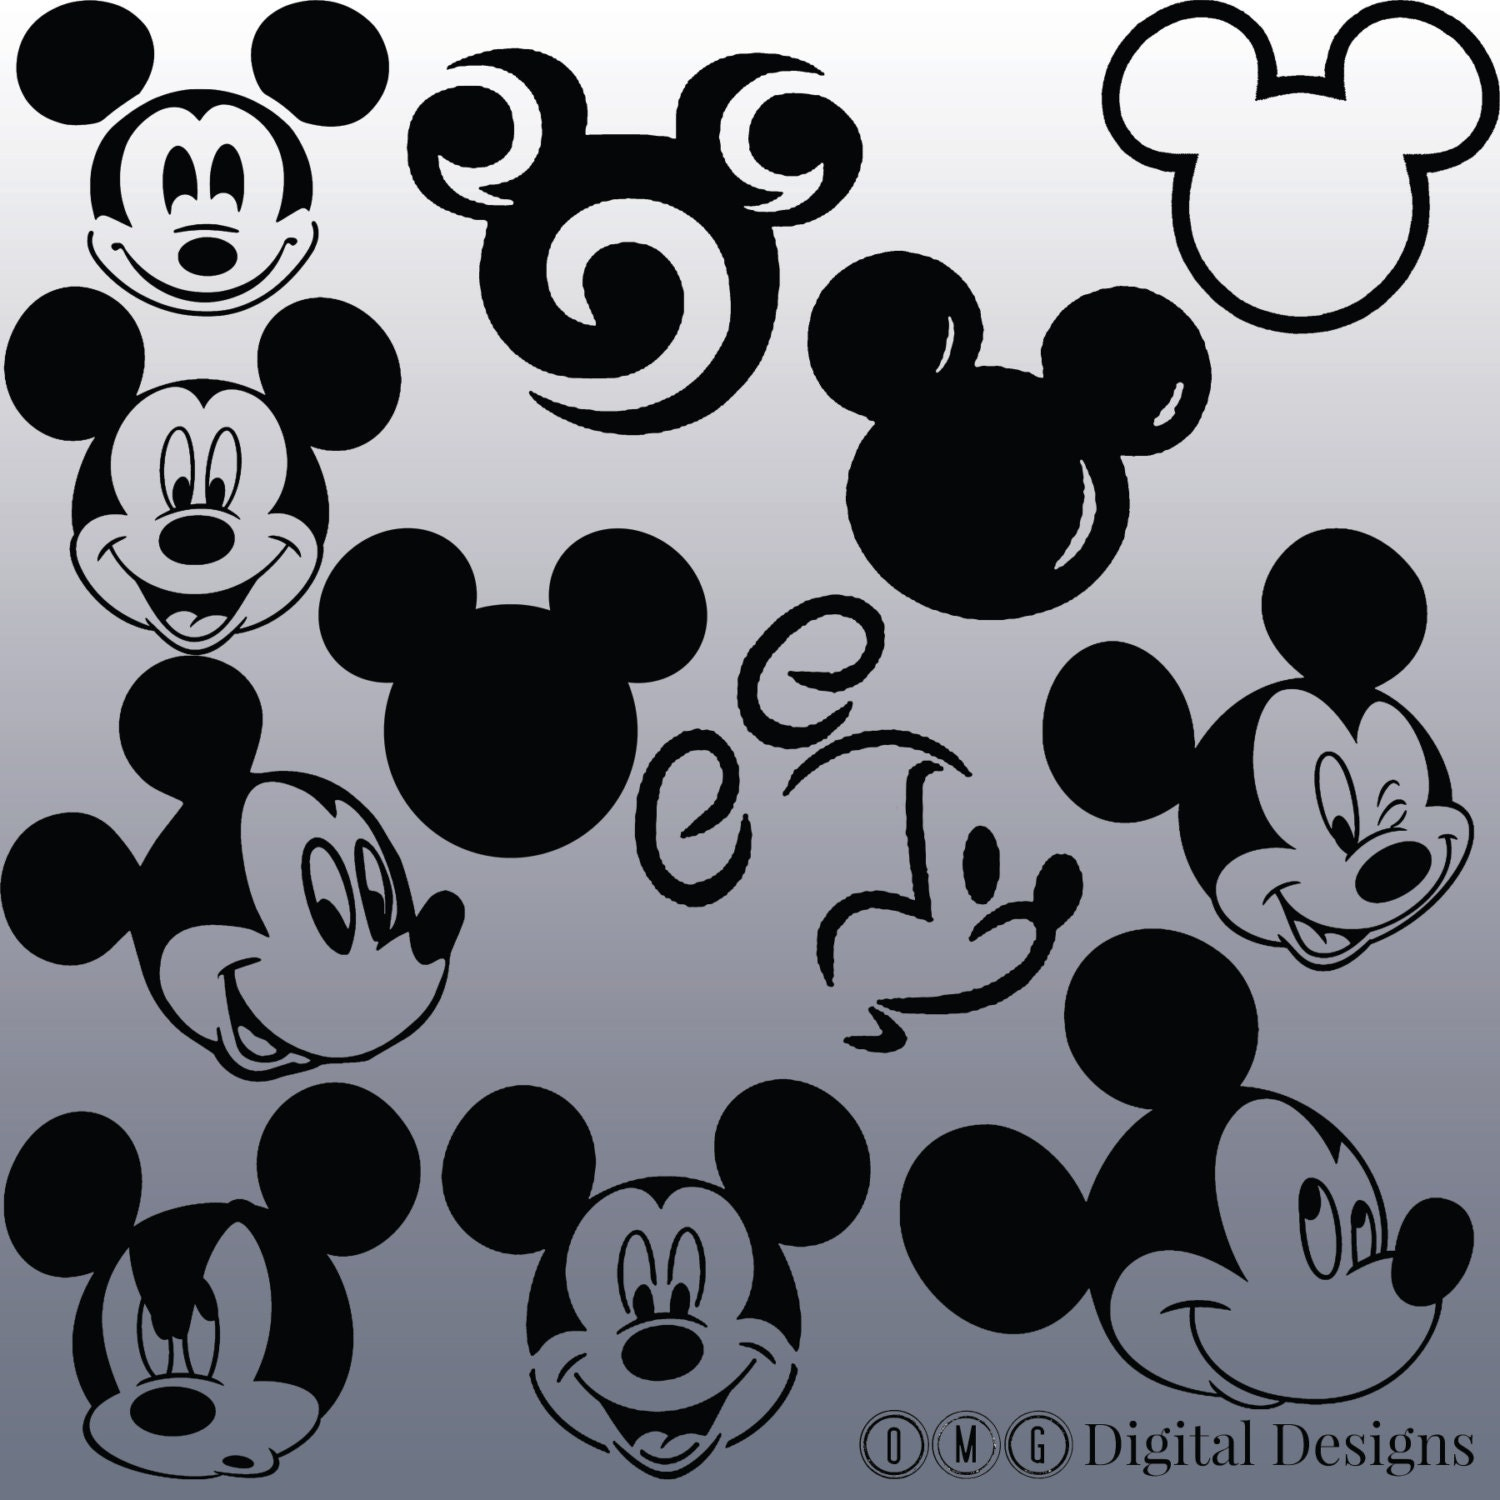 12 Mickey Mouse Head Silhouette Clipart Images Design